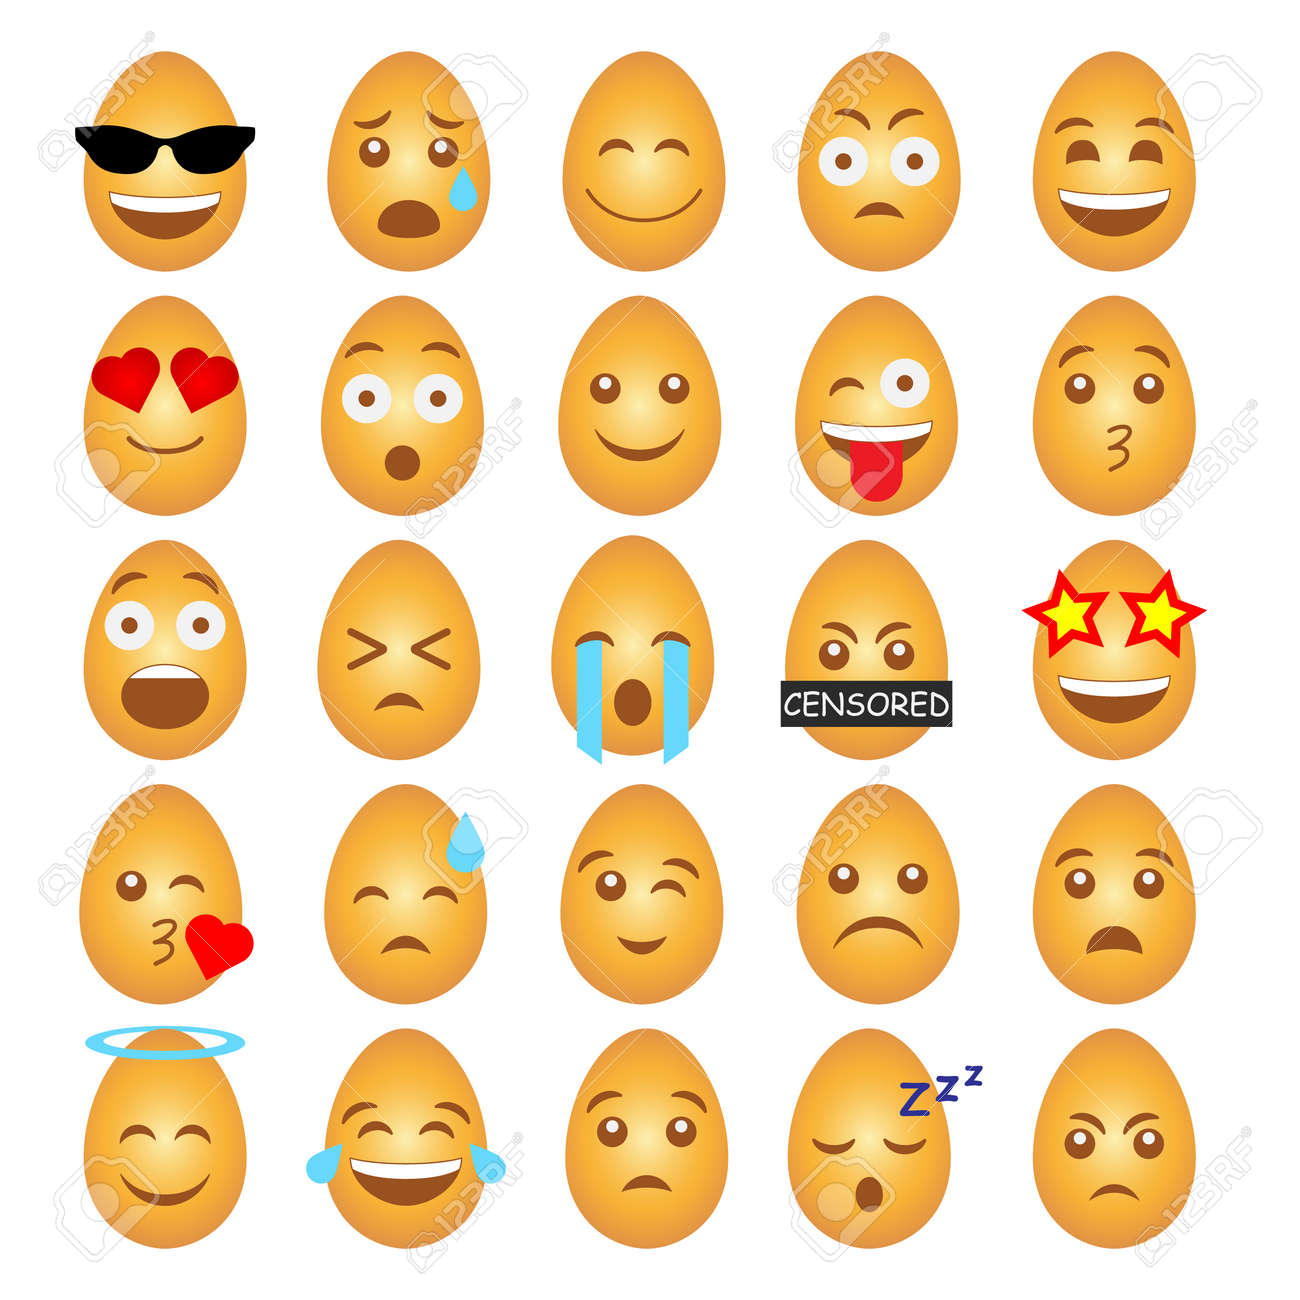 A set of emoticons in the form of Easter eggs. - 165820781